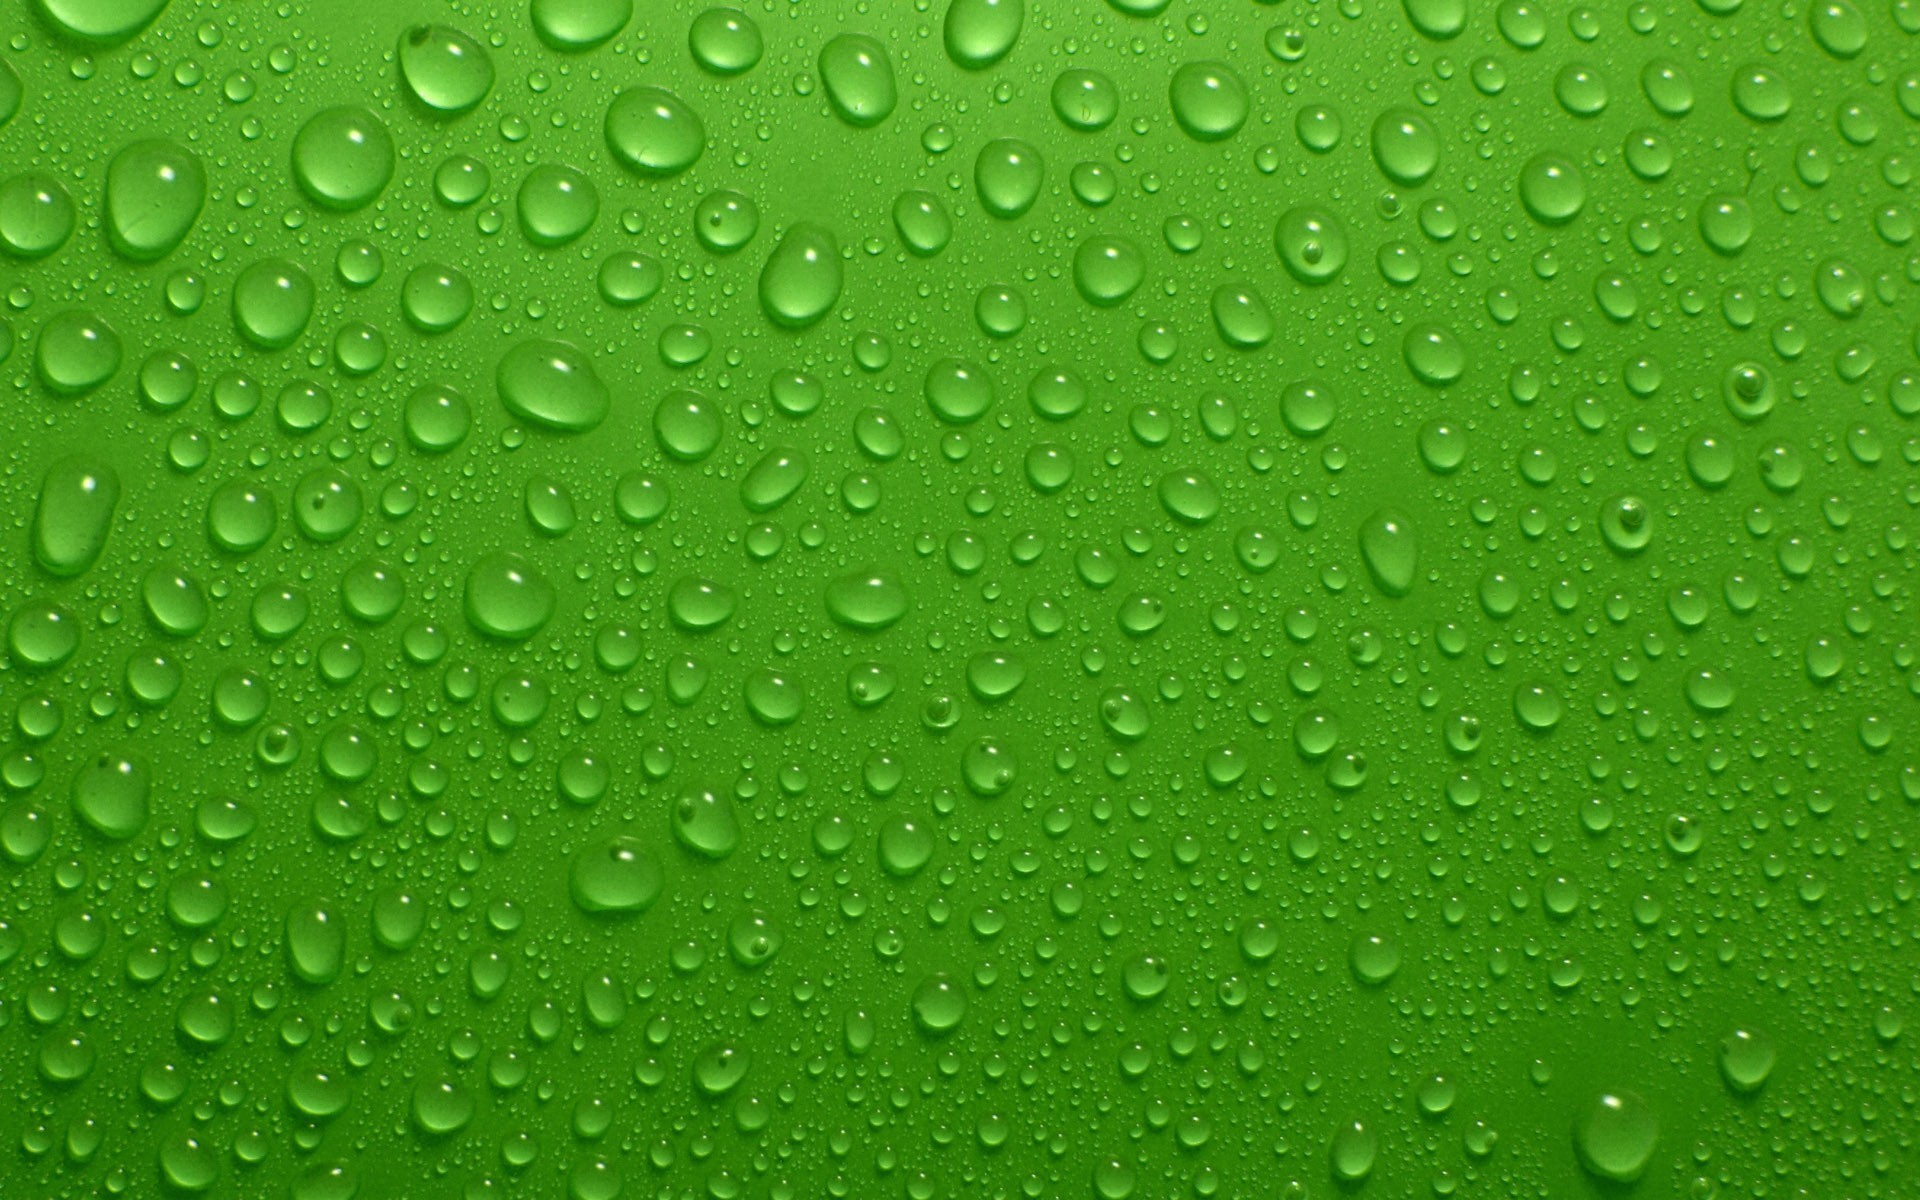 Wallpapers for Green Resolution 1920x1200px 1920x1200